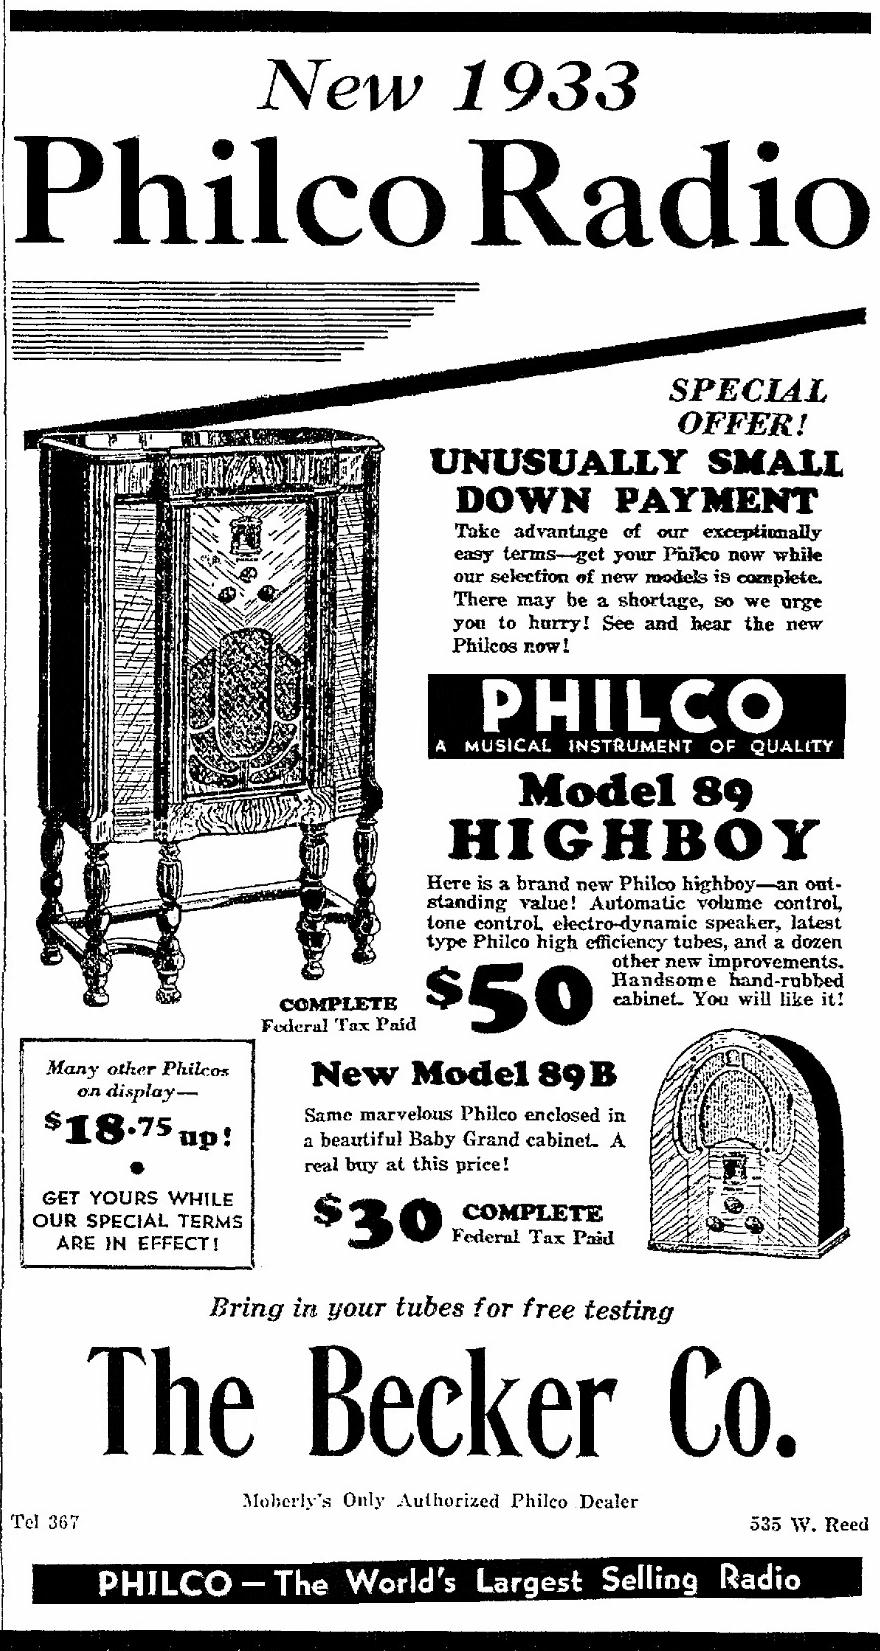 Philco Model 89 (89B) Cathedral Radio (1933)